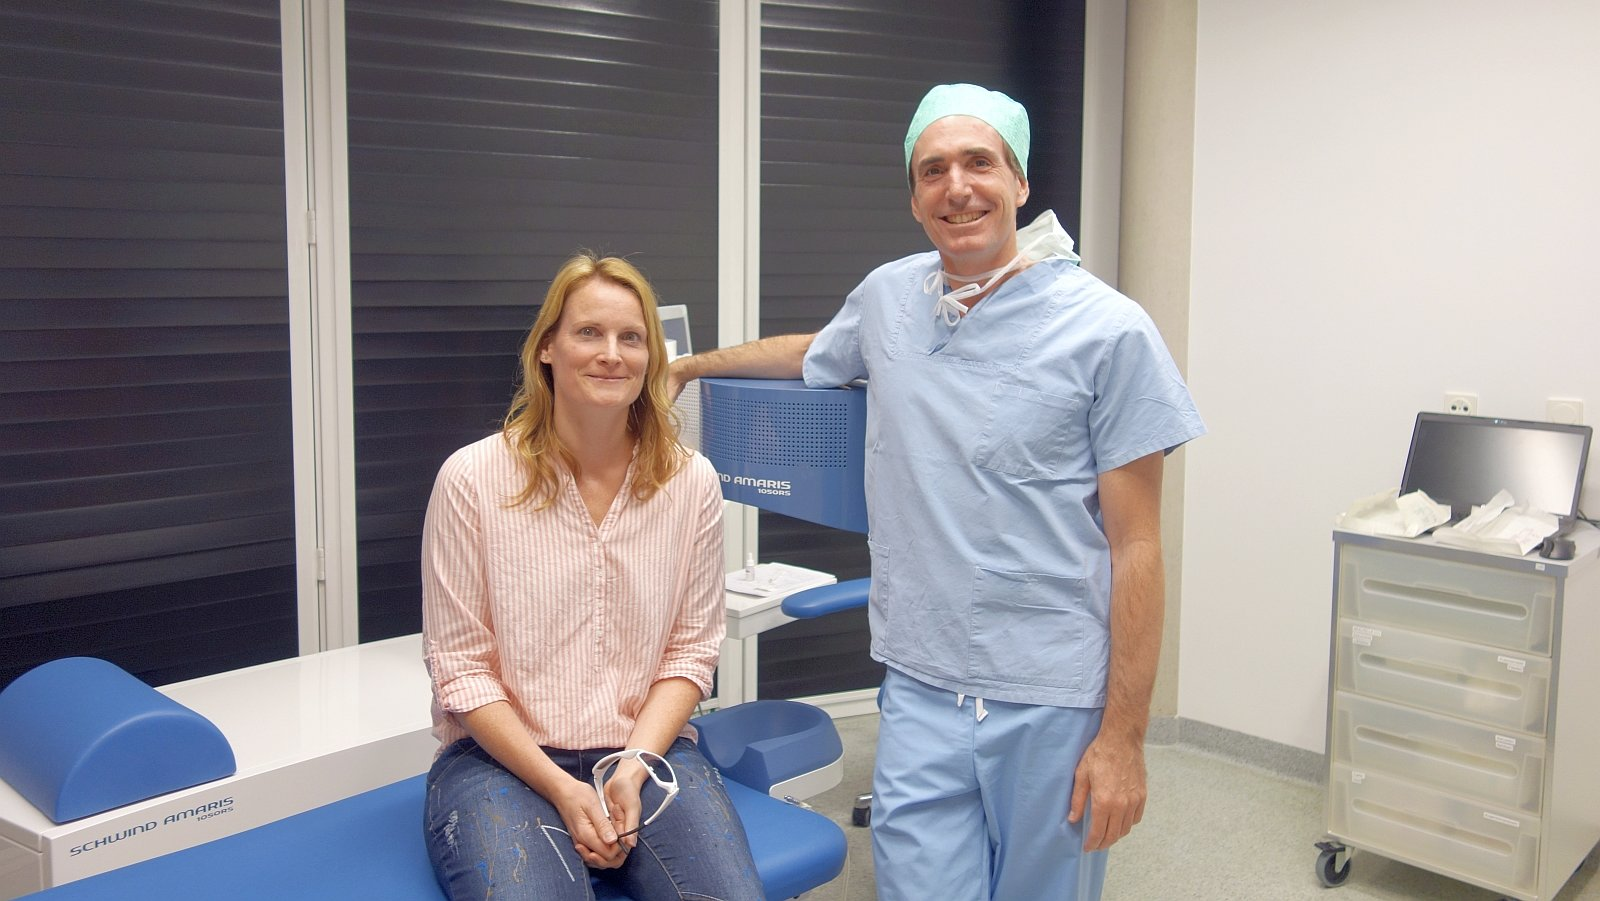 Client Nadine Dietrich with her attending physician Dr. de Ortueta